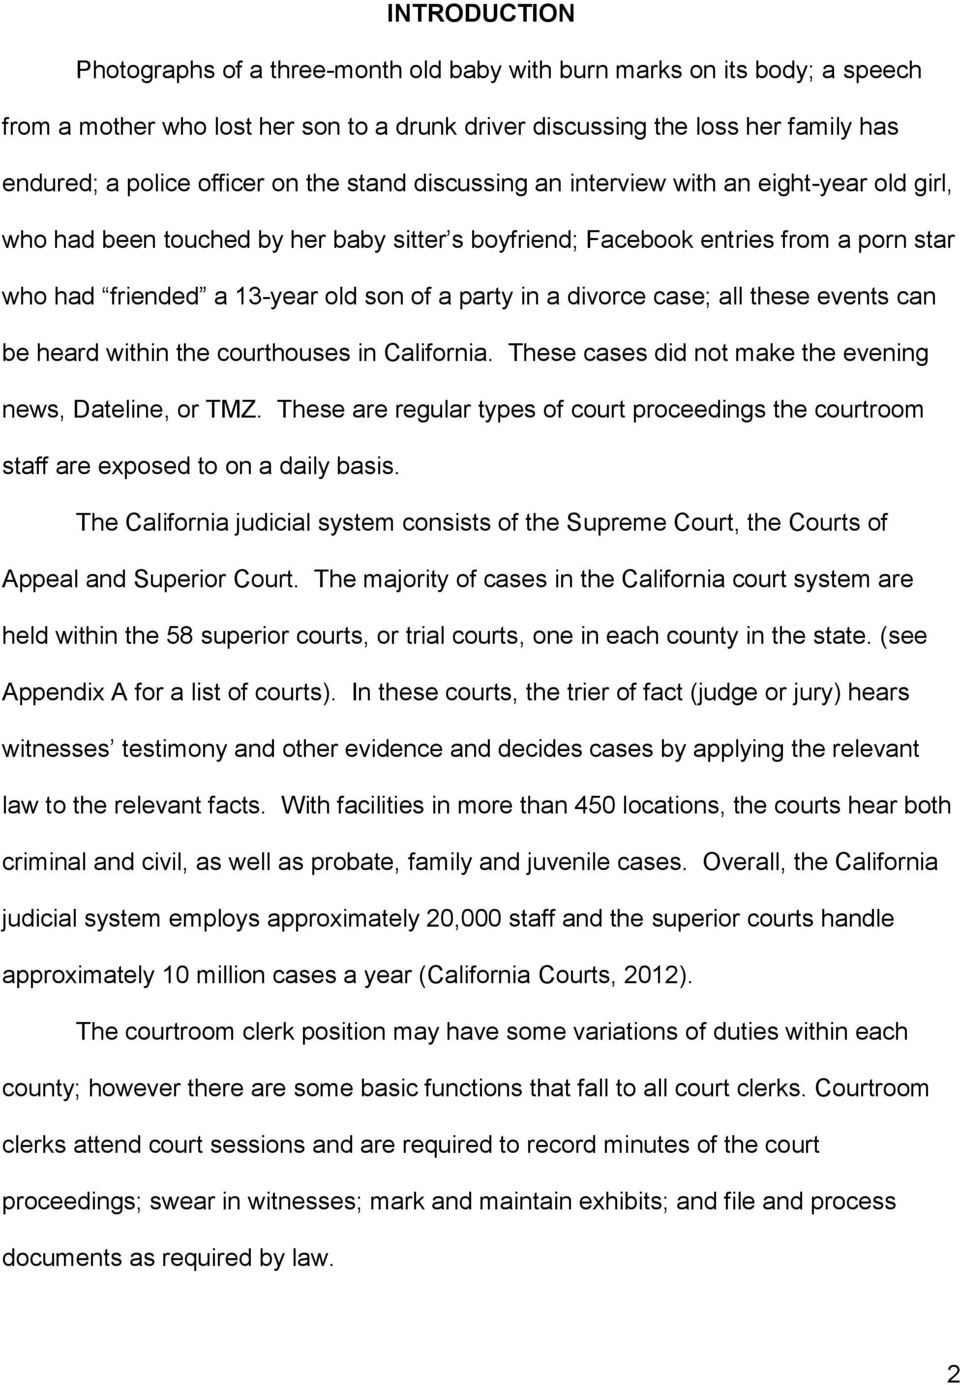 in a divorce case; all these events can be heard within the courthouses in California. These cases did not make the evening news, Dateline, or TMZ.